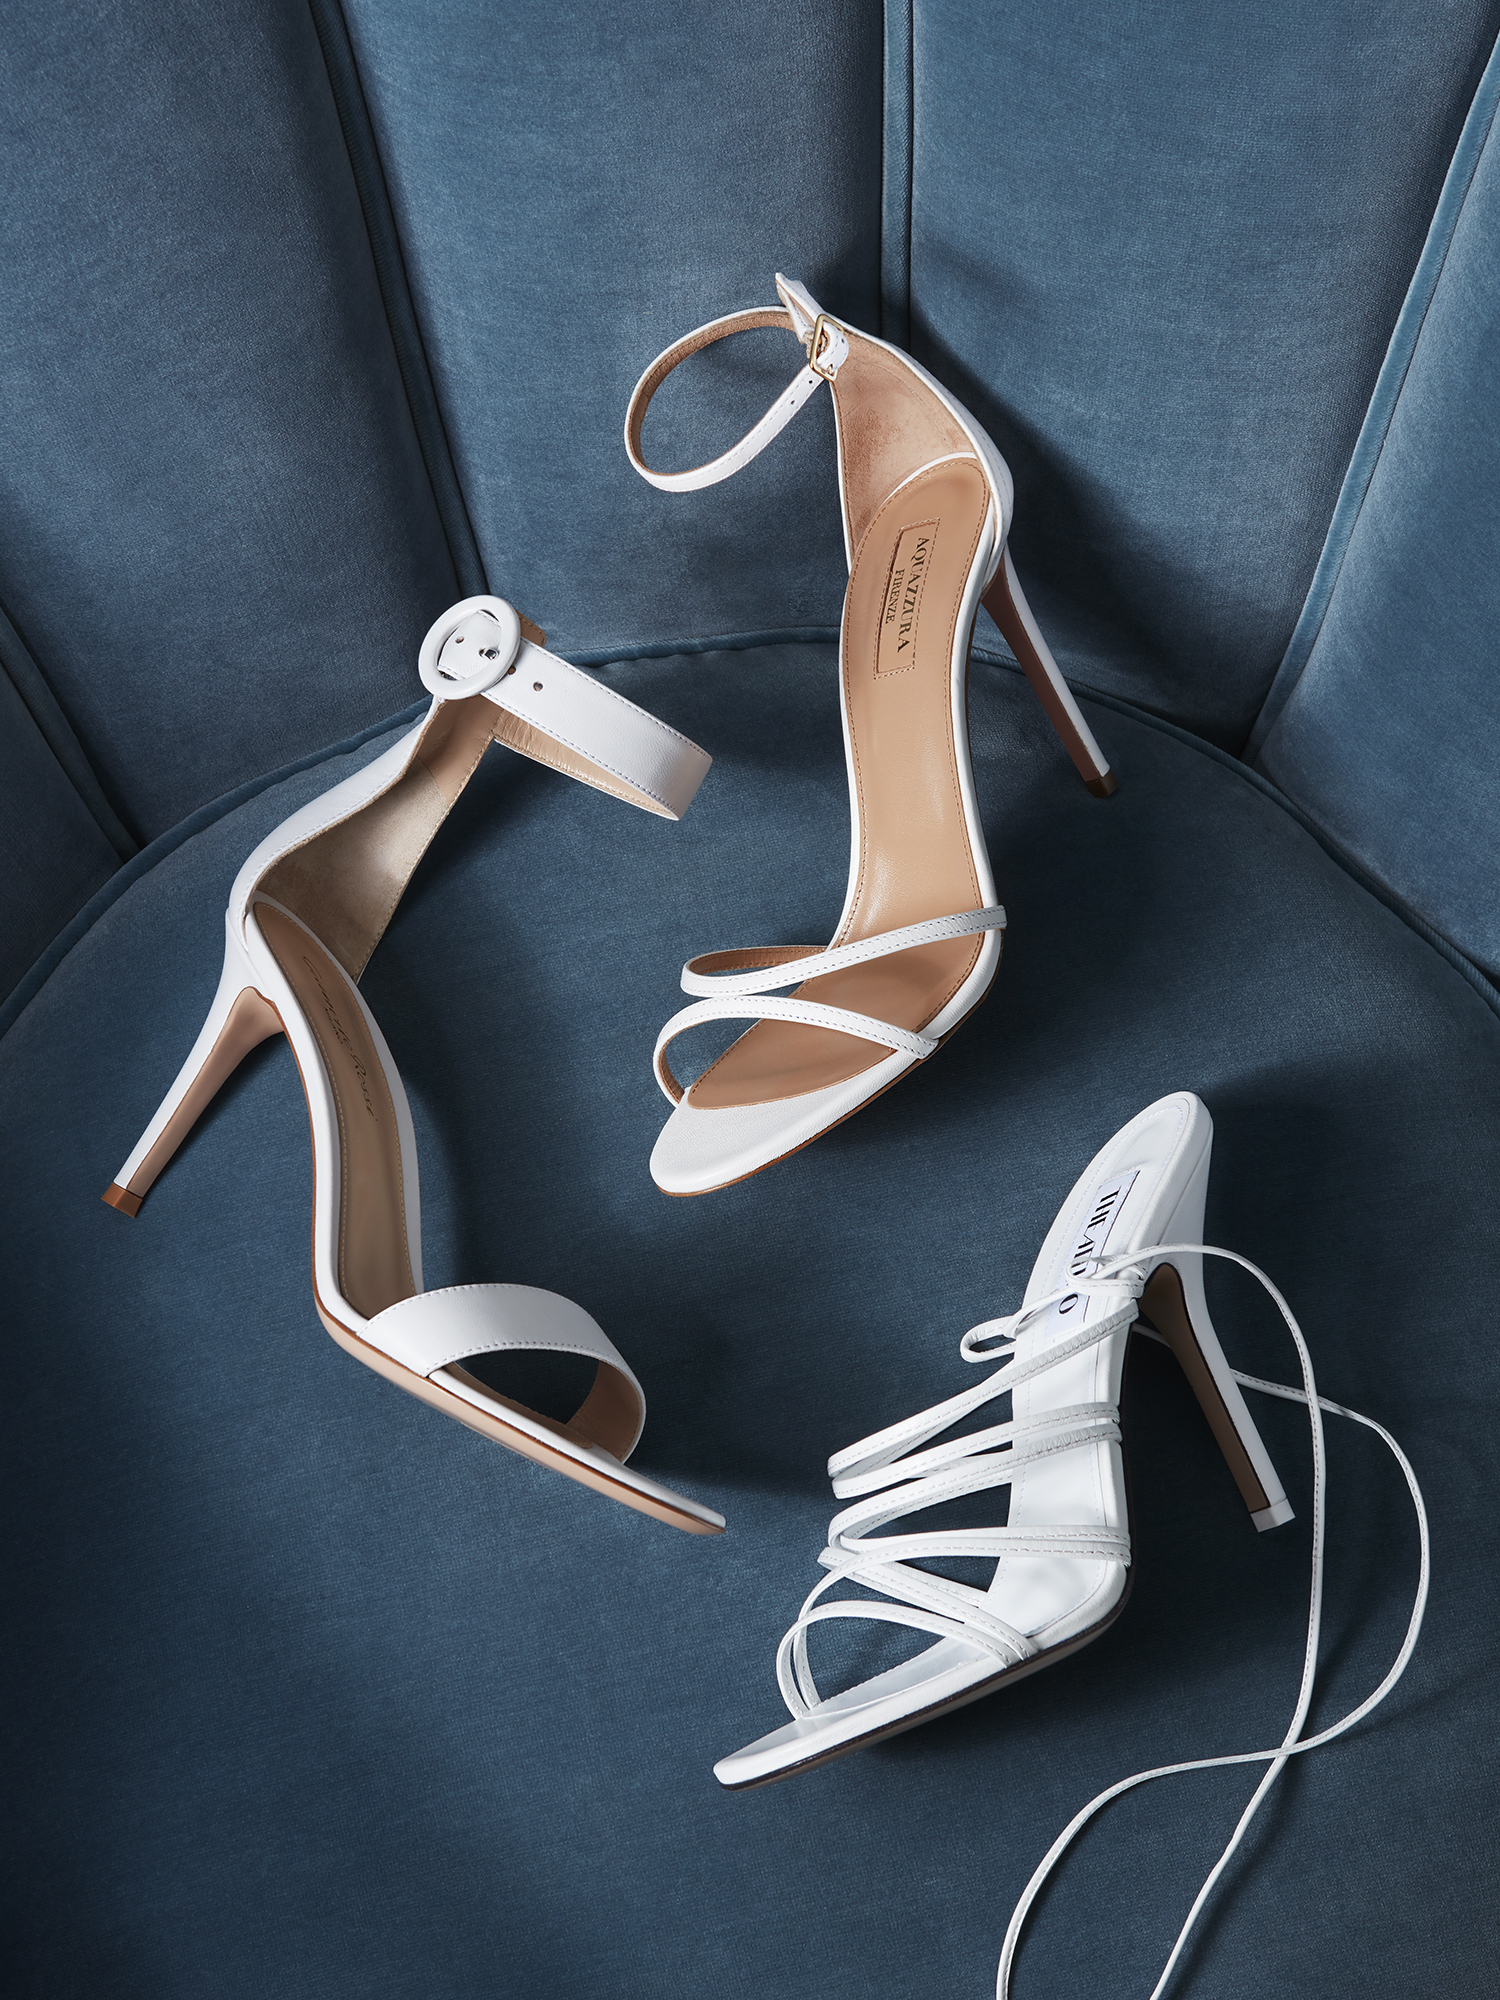 Best Bridal Shoes: The Ultimate